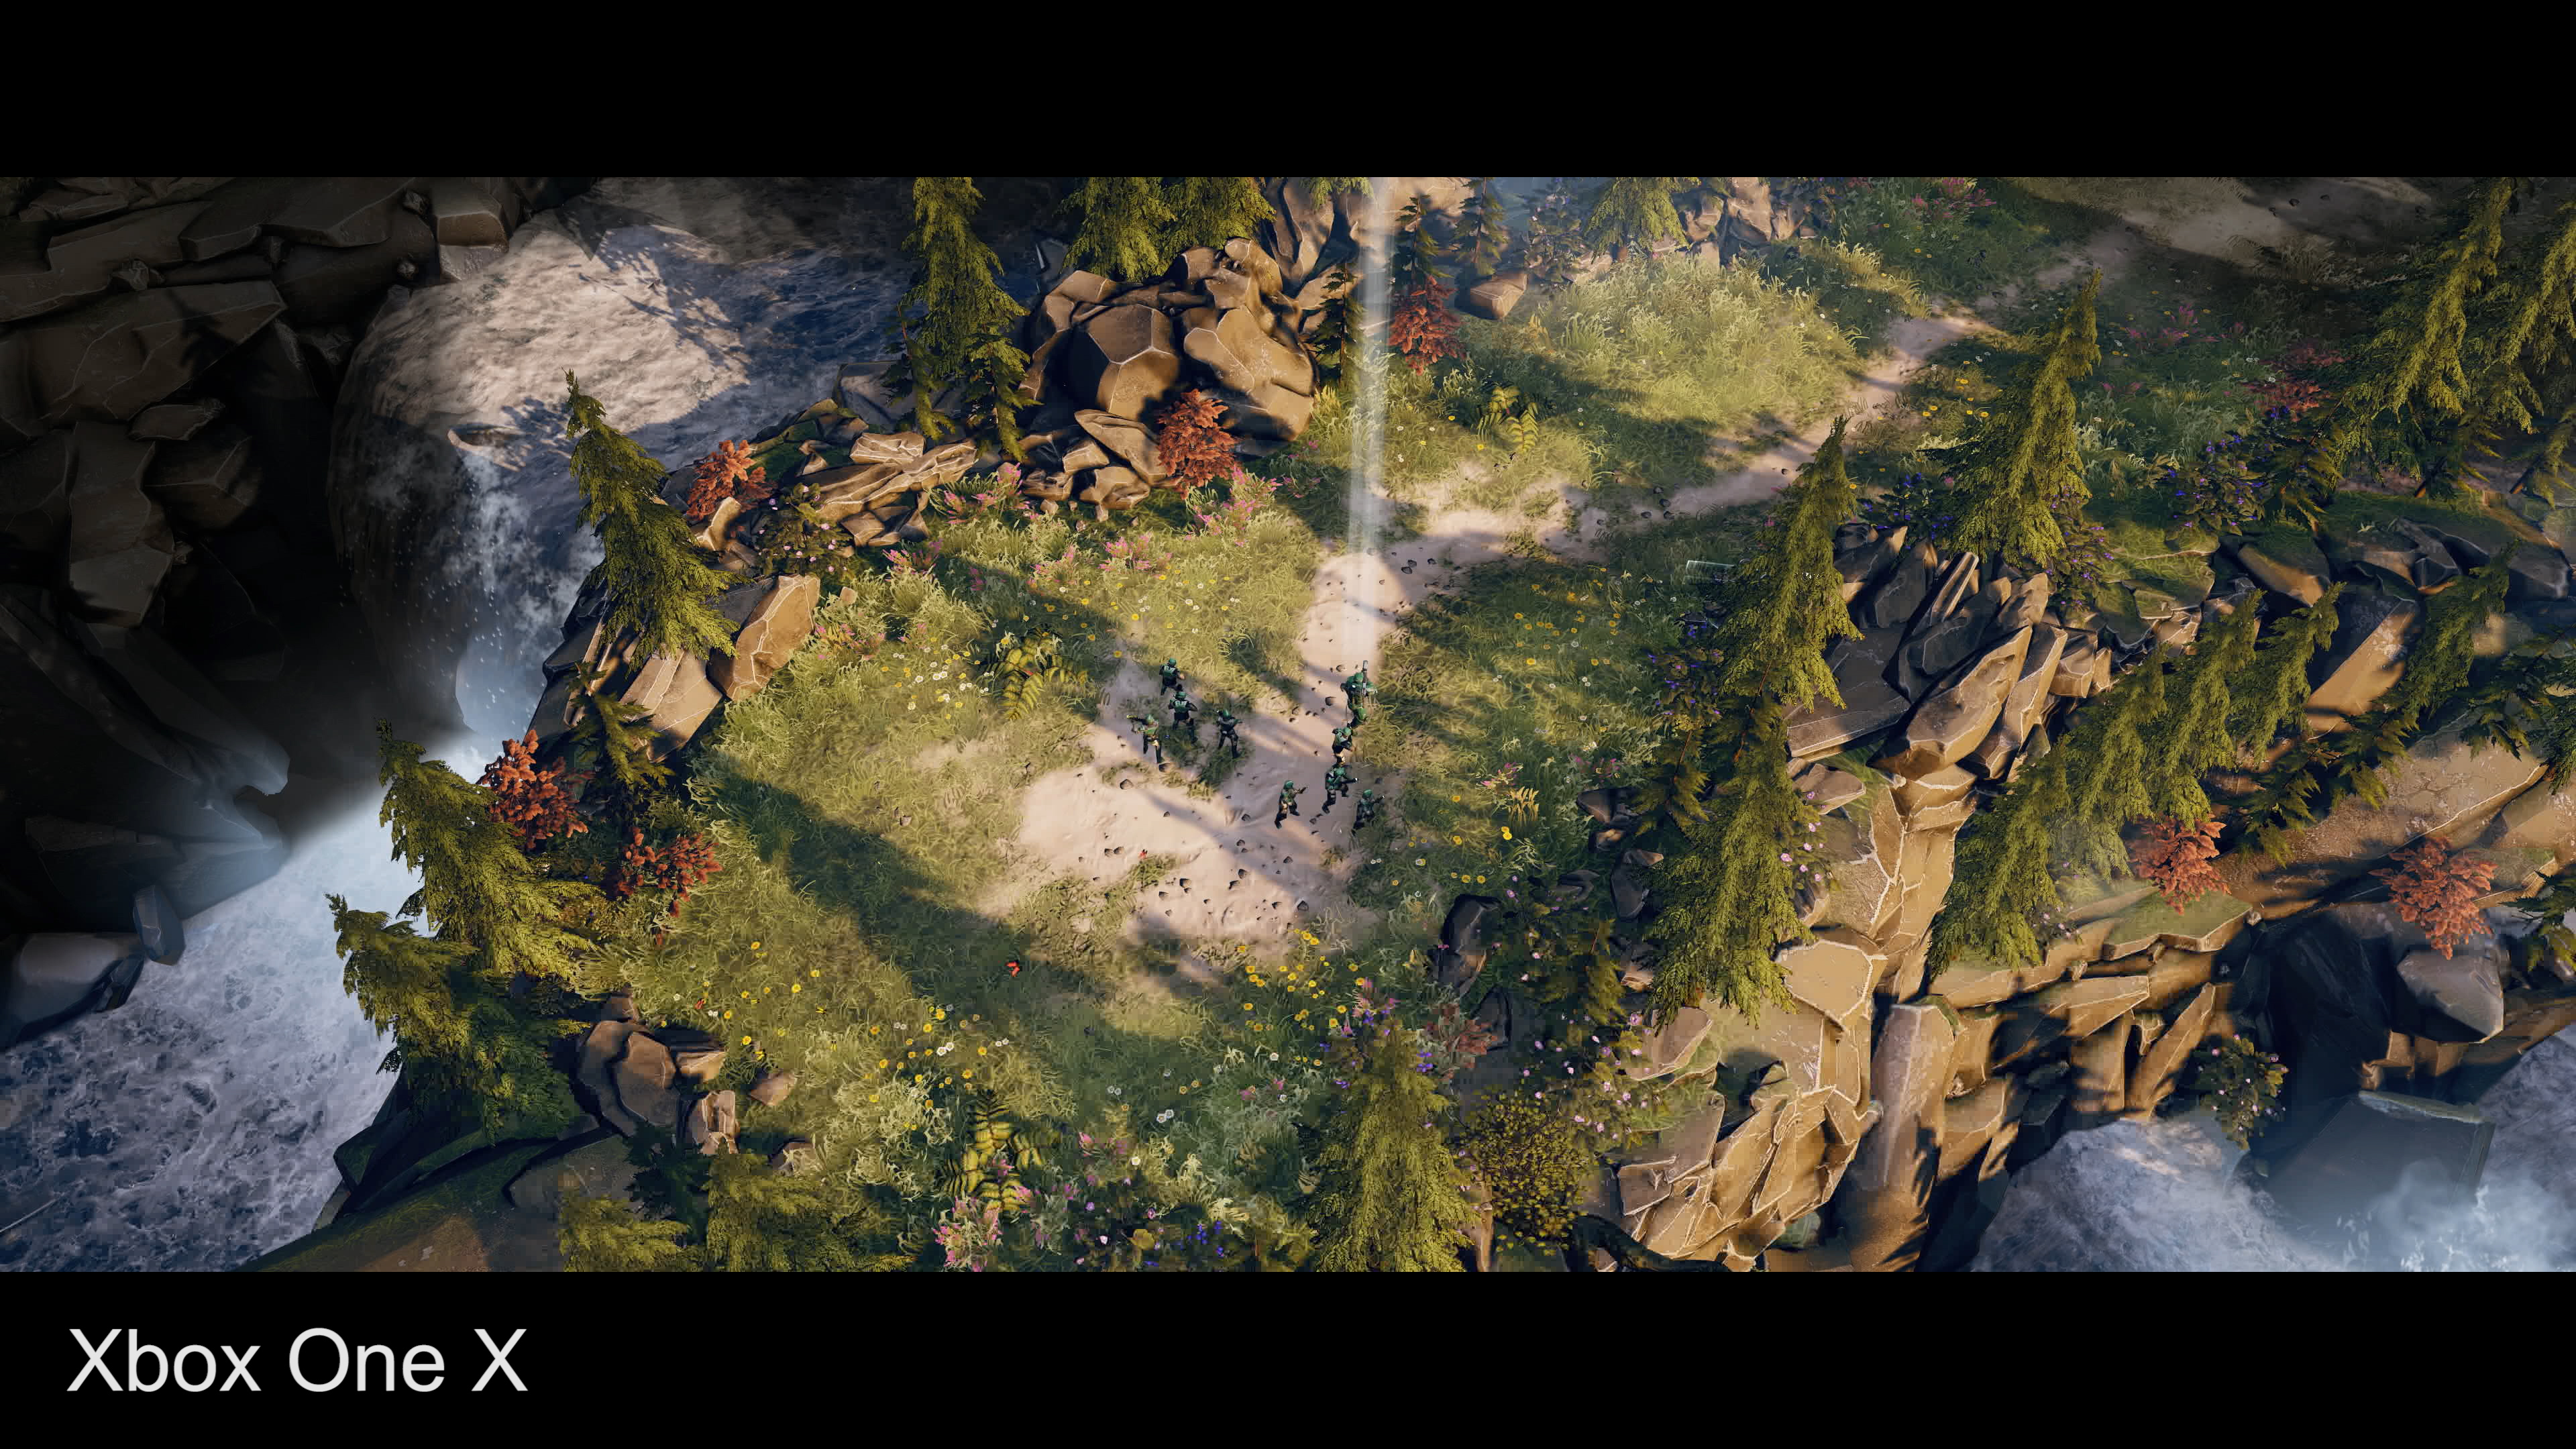 Halo Wars 2: how Xbox One X compares to base hardware and PC